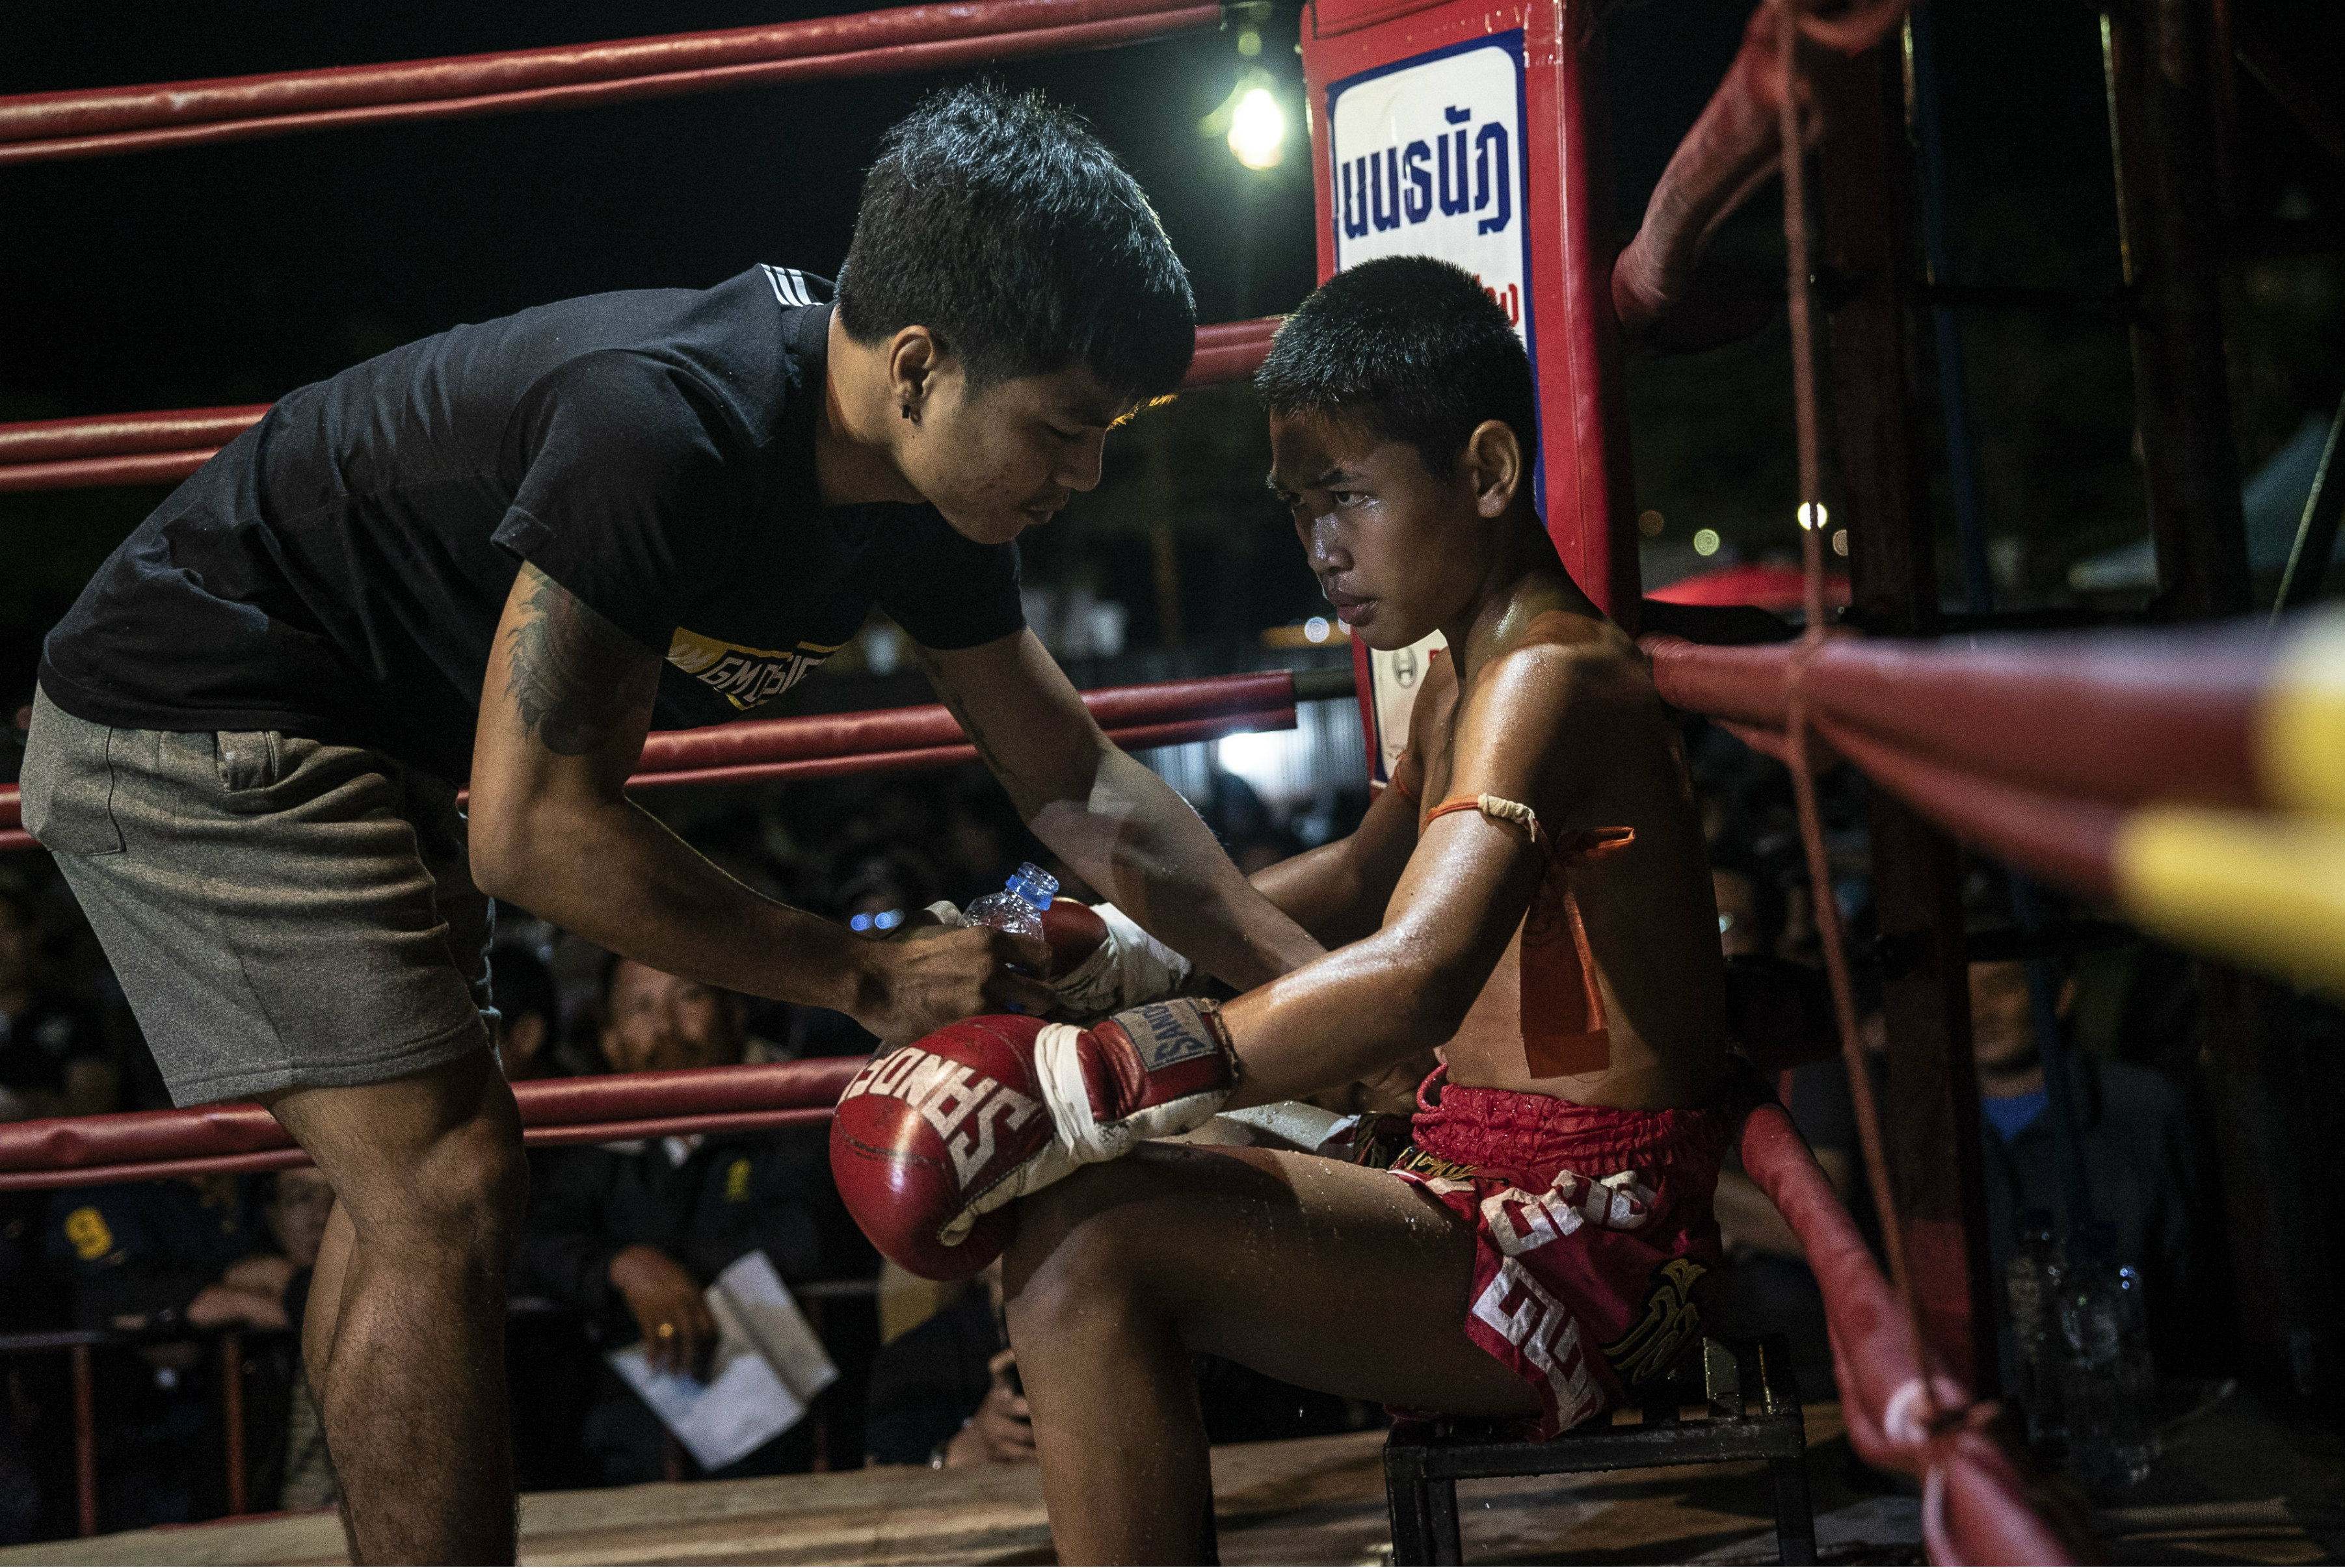 A young muay Thai fighter at a small local fighting stage in That Phanom, Thailand.